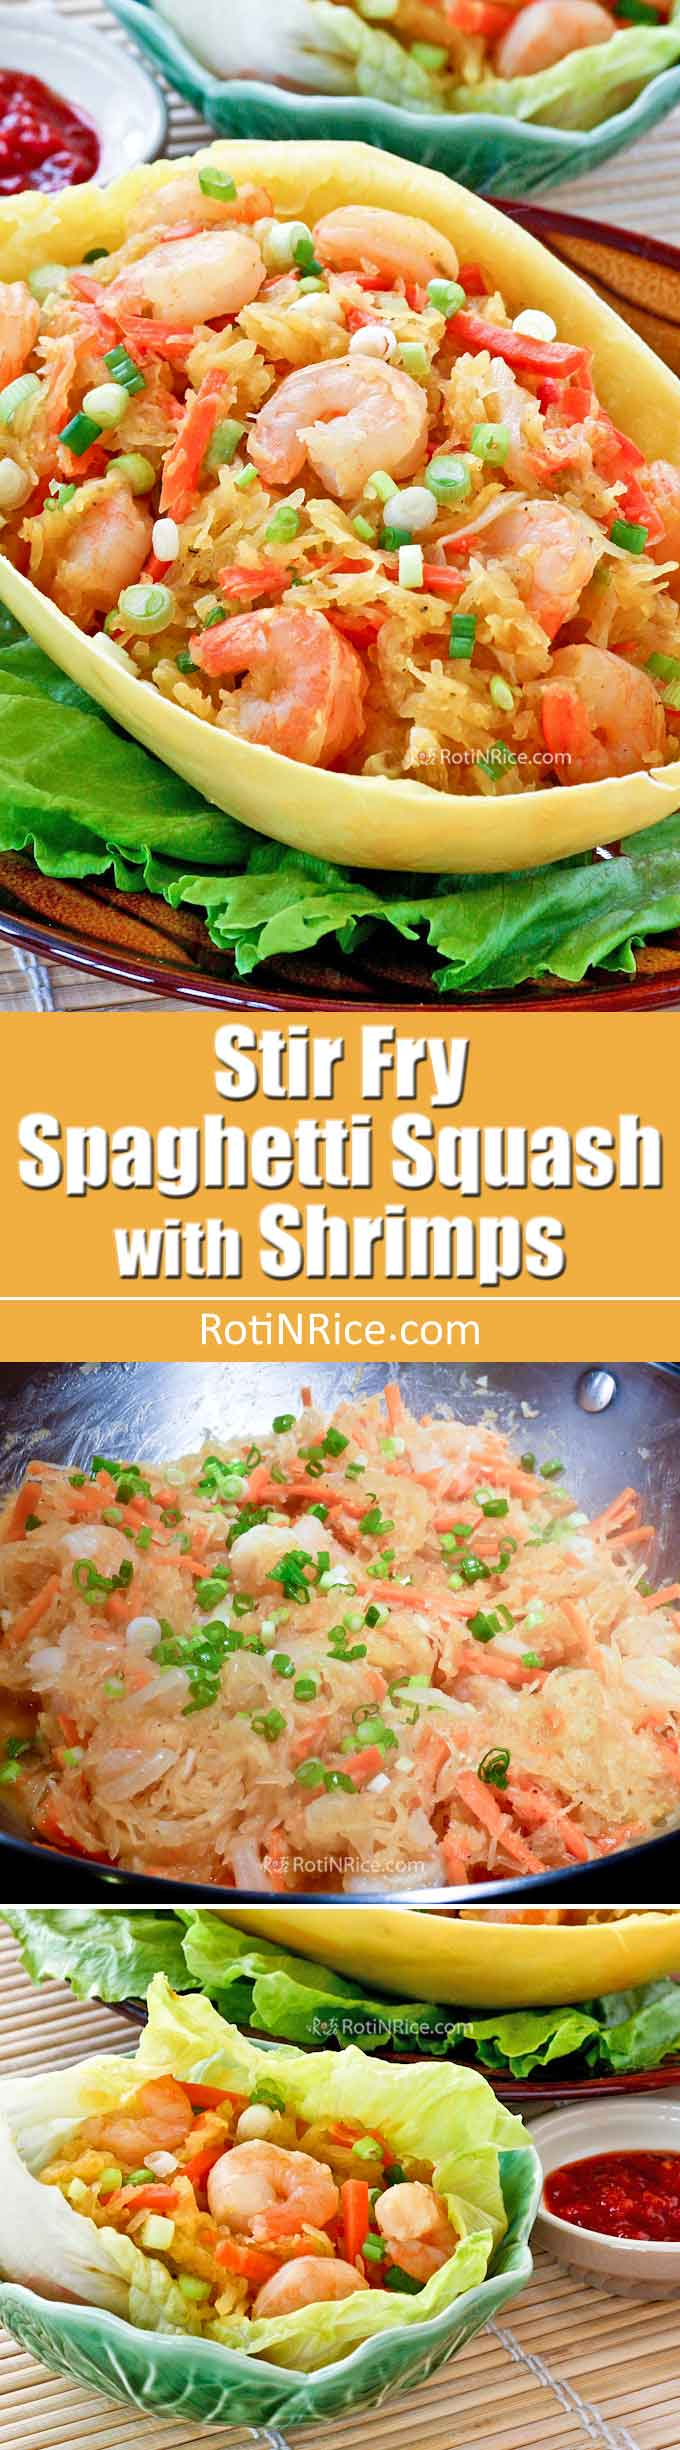 This delicious Stir-Fry Spaghetti Squash with Shrimp is a twist on the classic Jiu Hu Char (stir Fry Jicama), often served as a filling for lettuce wraps. | RotiNRice.com